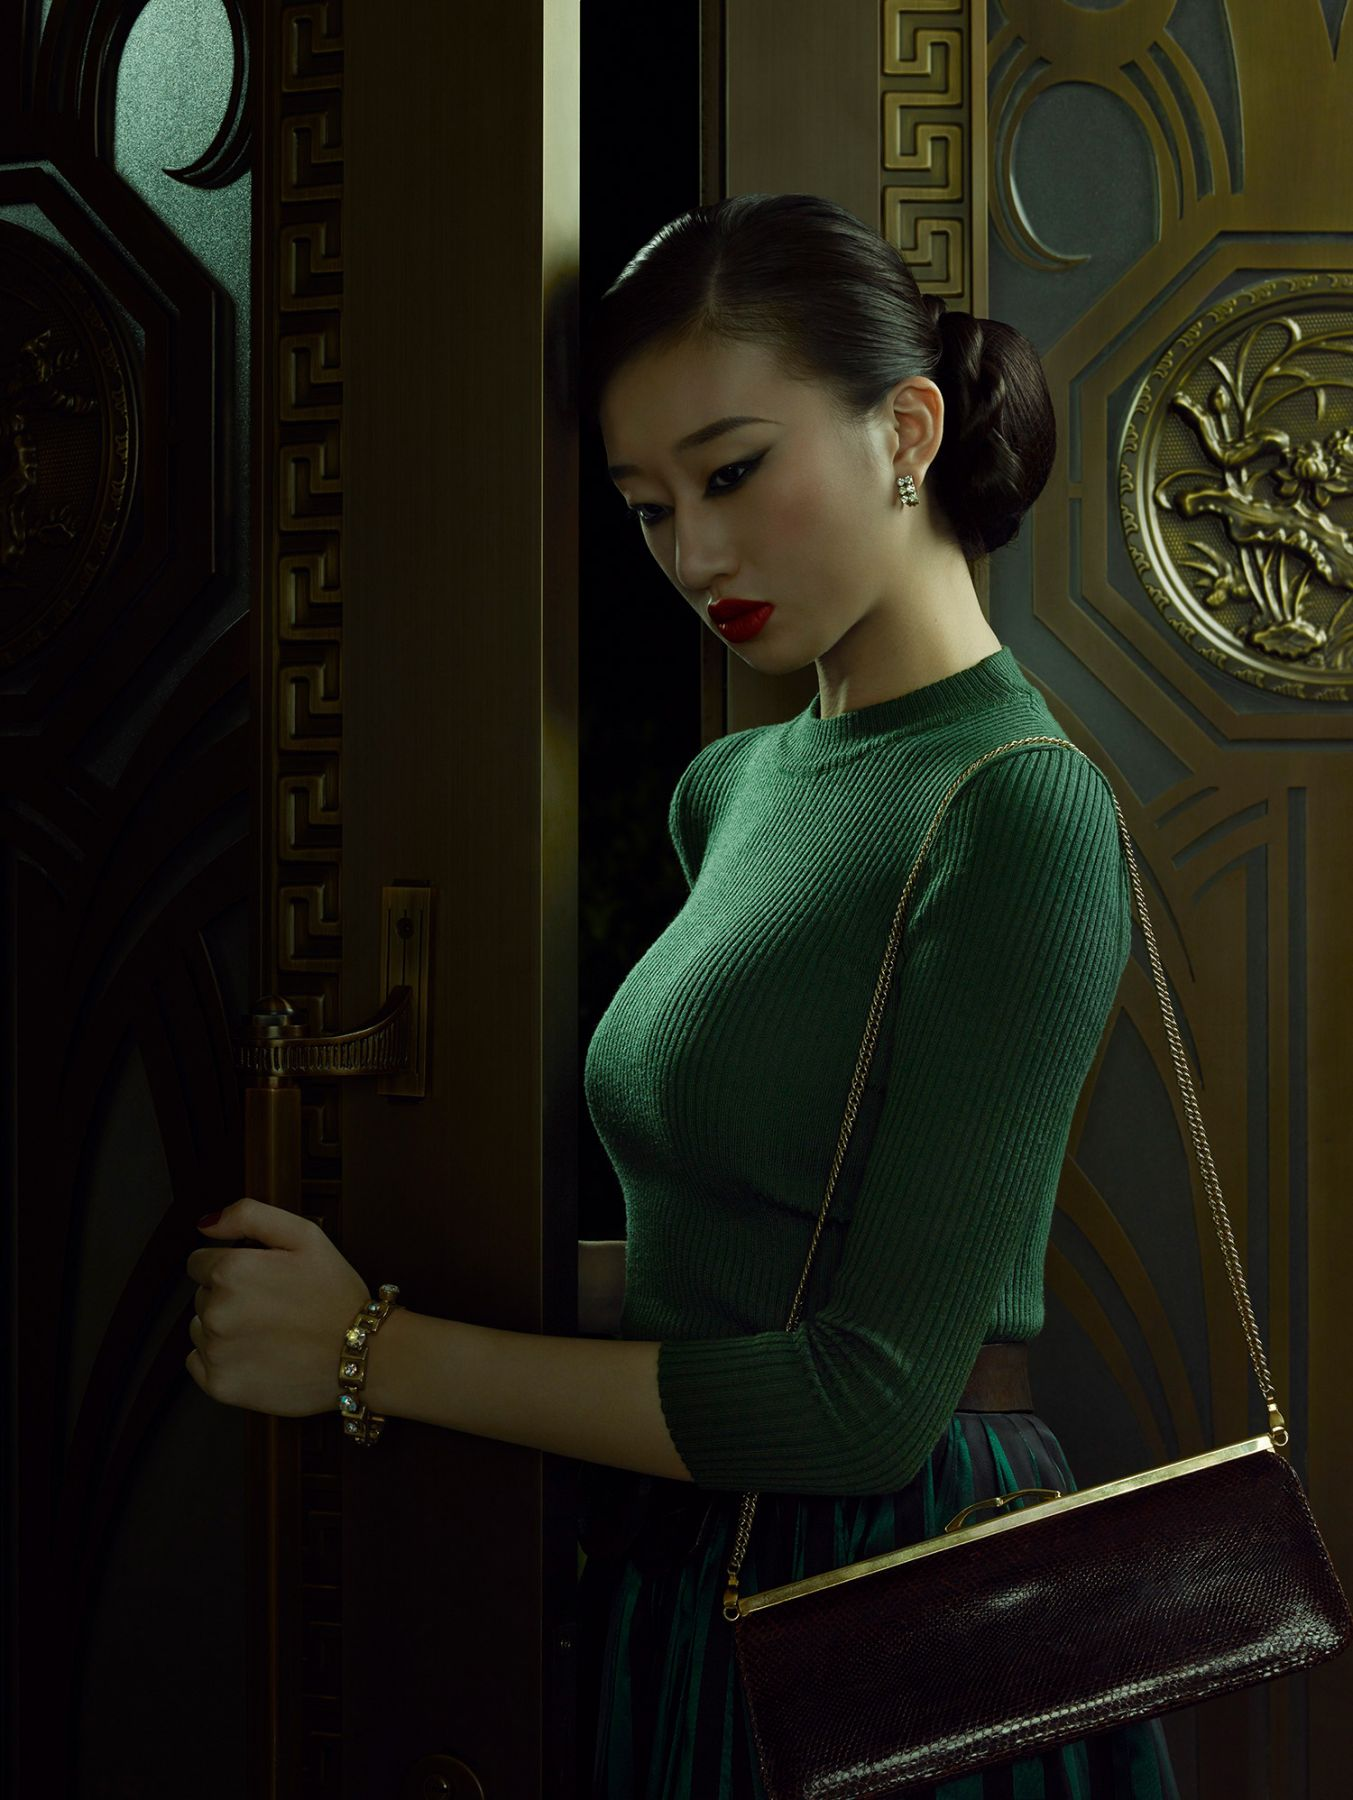 Shanghai, Du Mansion, Portrait 01, 2017